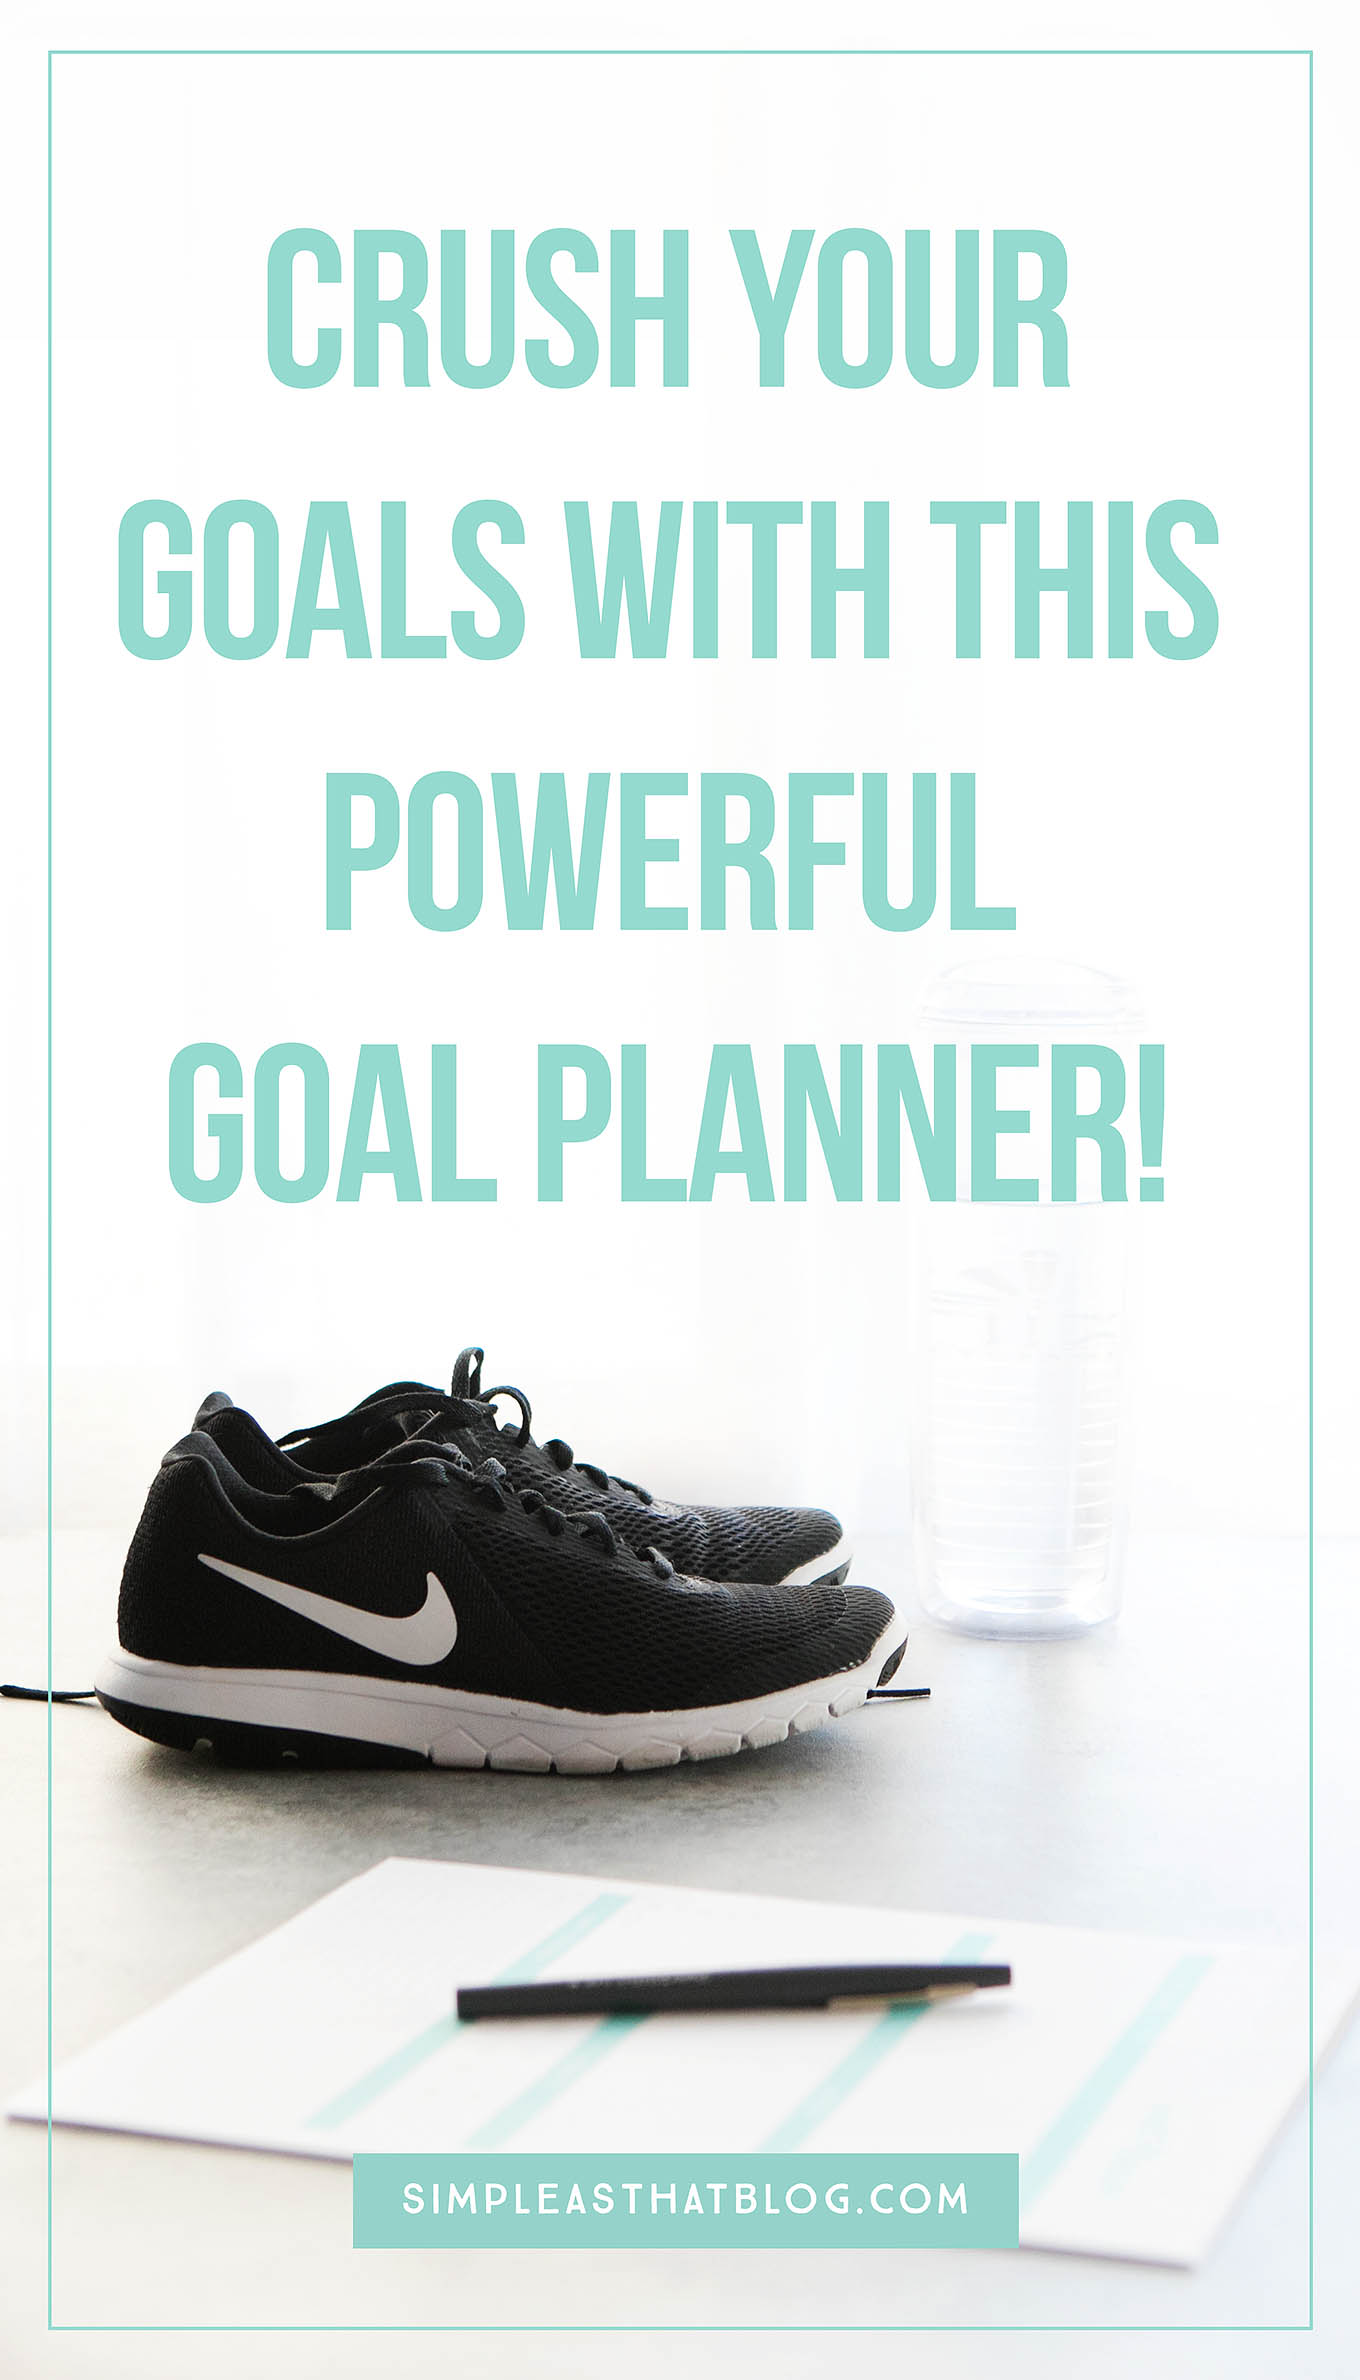 Get ready to crush your goals with this powerful goal planner! It's functional, concise and printer friendly. This is a tool that will help you move from setting goals to achieving them.